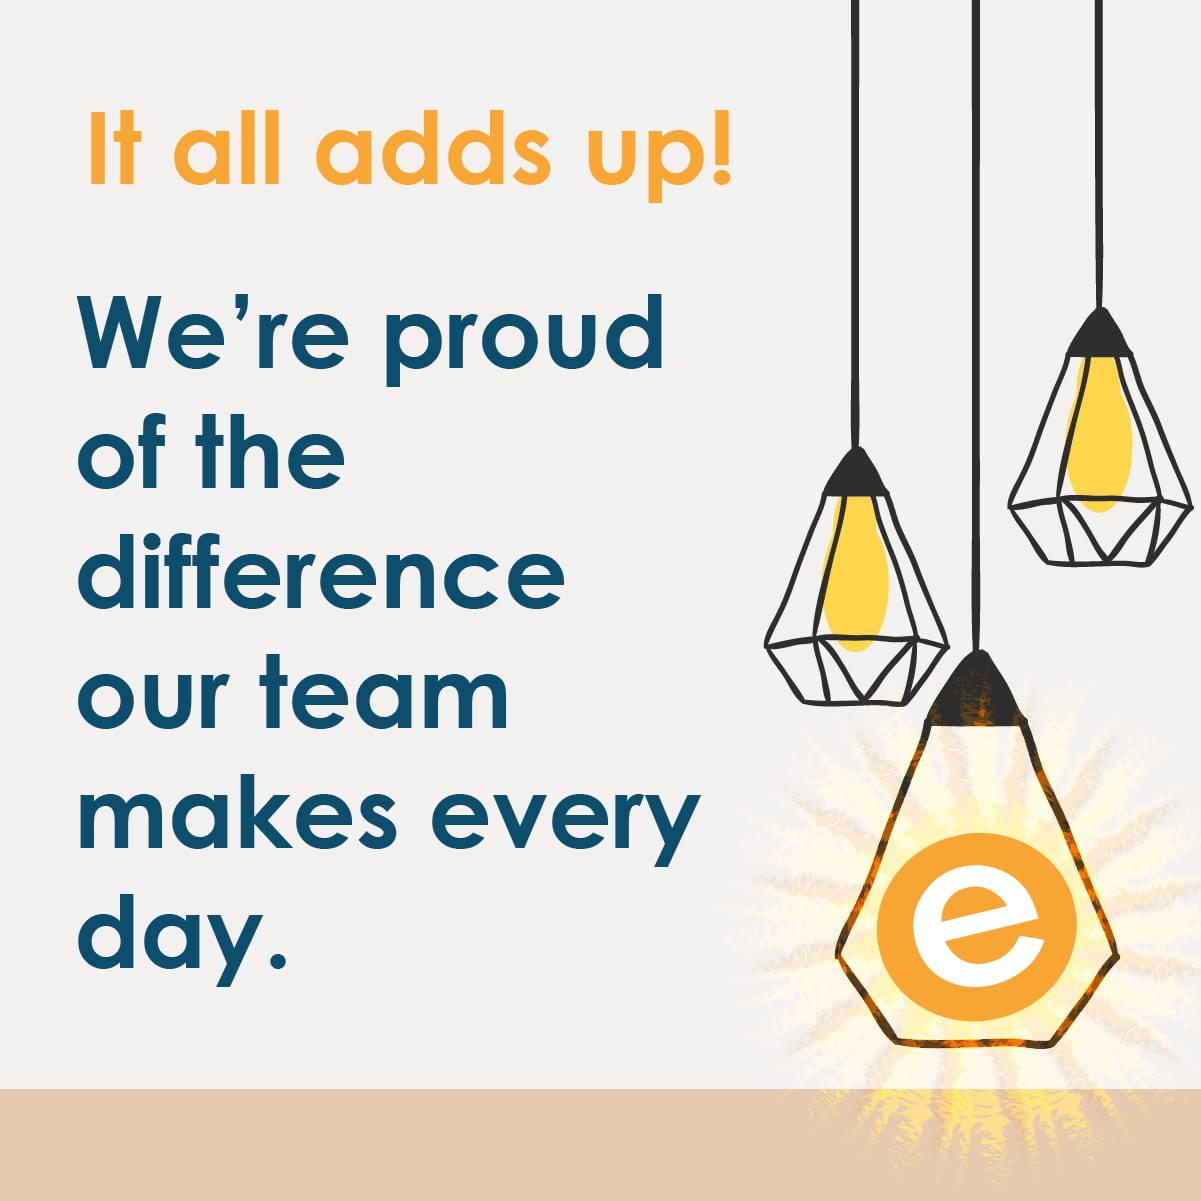 We're proud of the difference the EnergyLogic team makes every day.